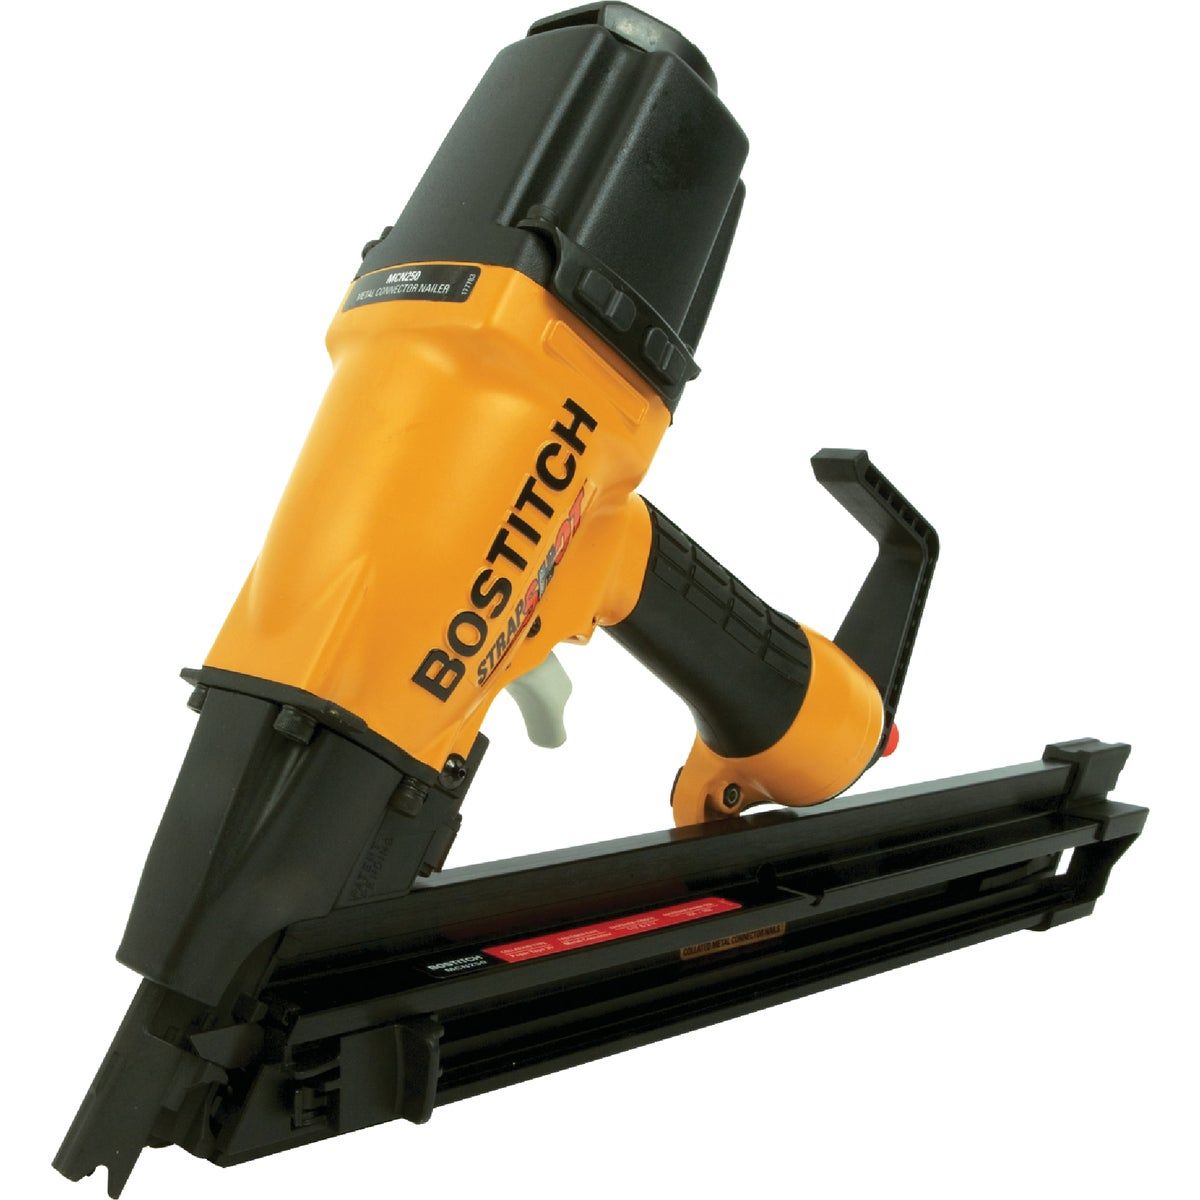 METAL CONNECTOR NAILER - MCN250 by Stanley Bostitch